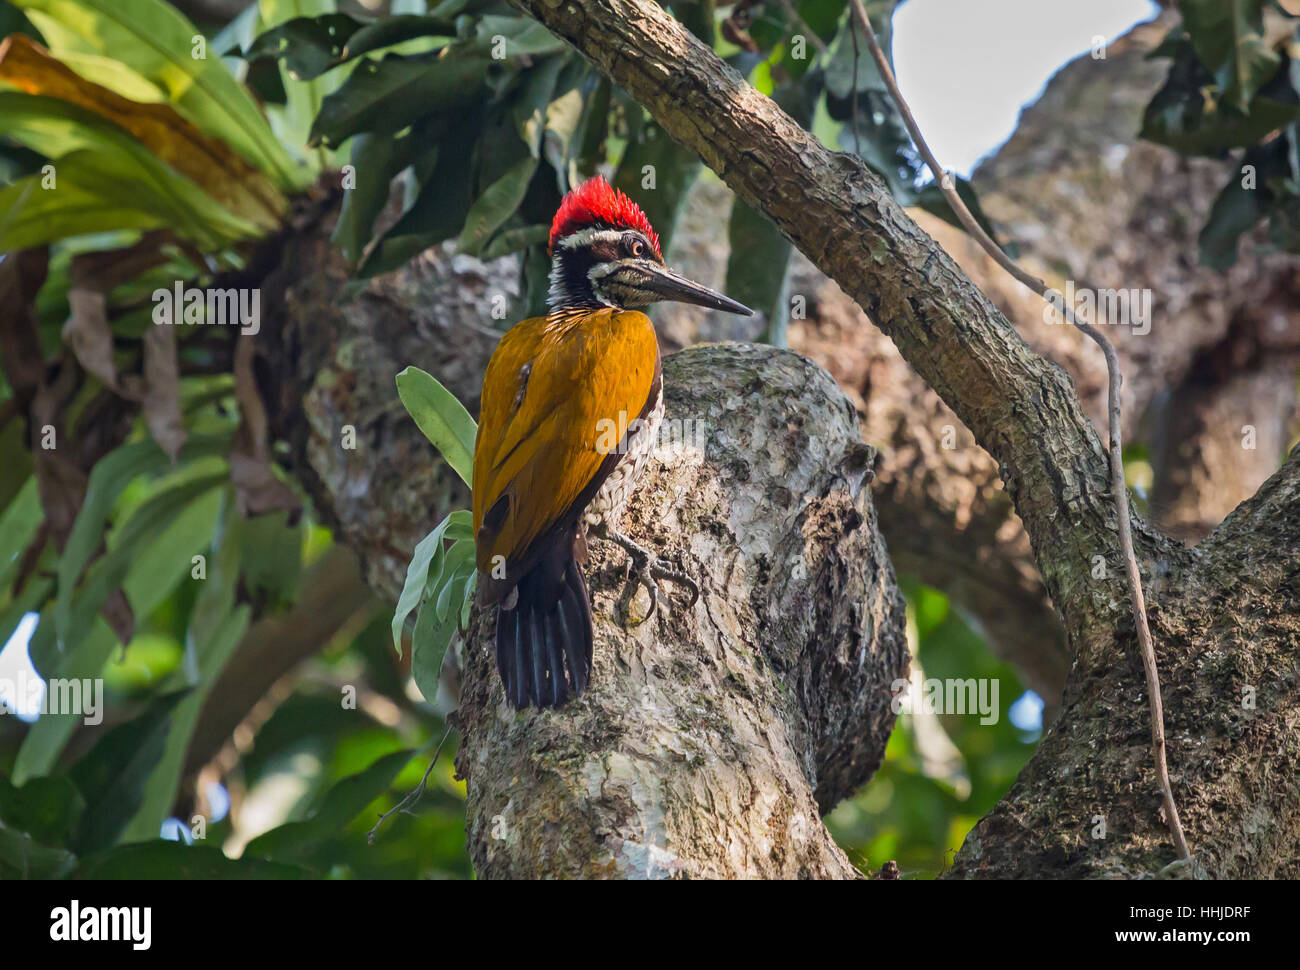 Indian Black-rumped Flameback Woodpecker bird perched vertically on the stem of a tree. Stock Photo